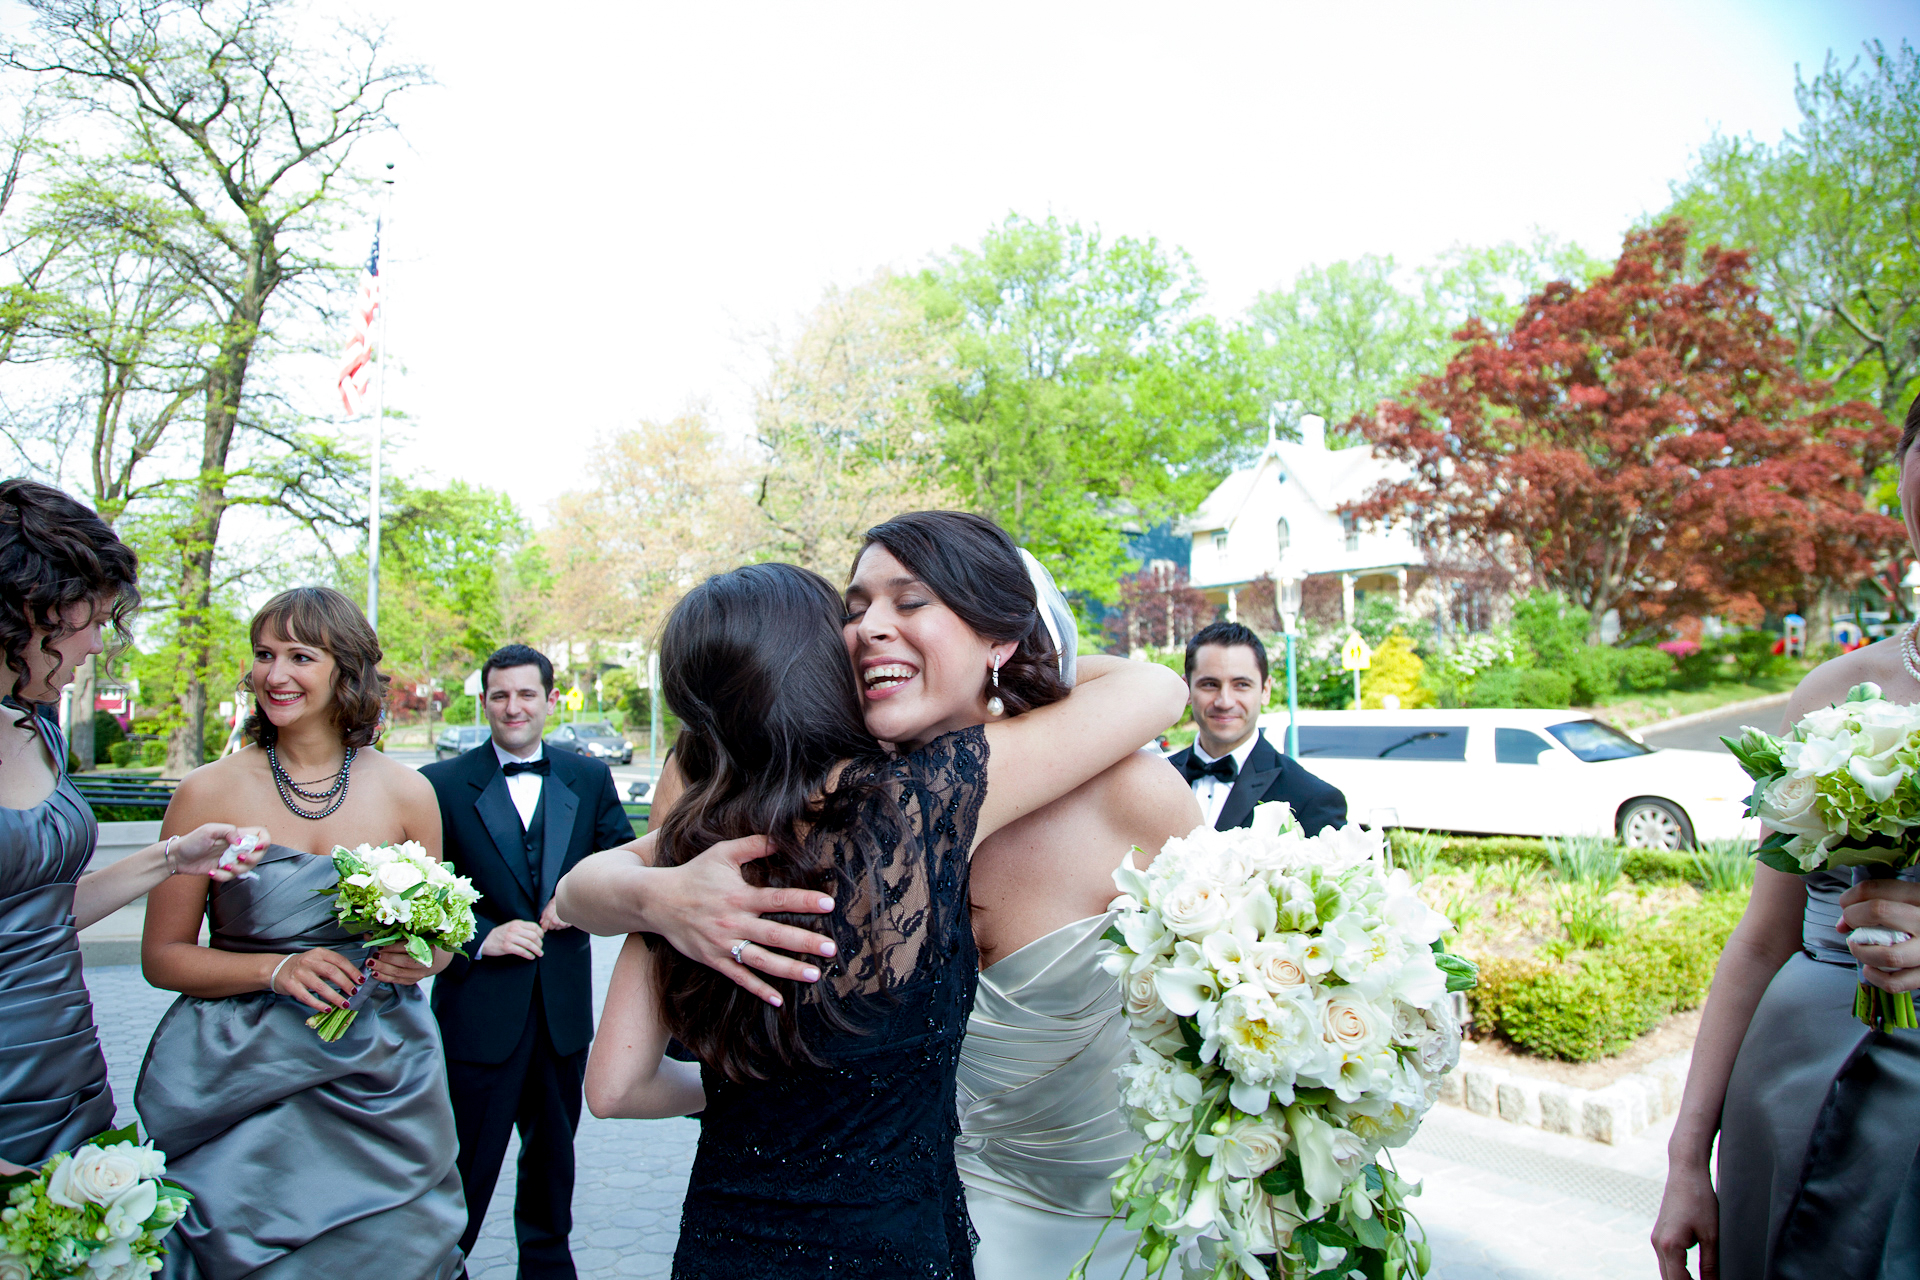 084_CarlyGaebe_SteadfastStudio_WeddingPhotography_Church_NewJersey_Bride_Bouquet_Bridesmades.jpg